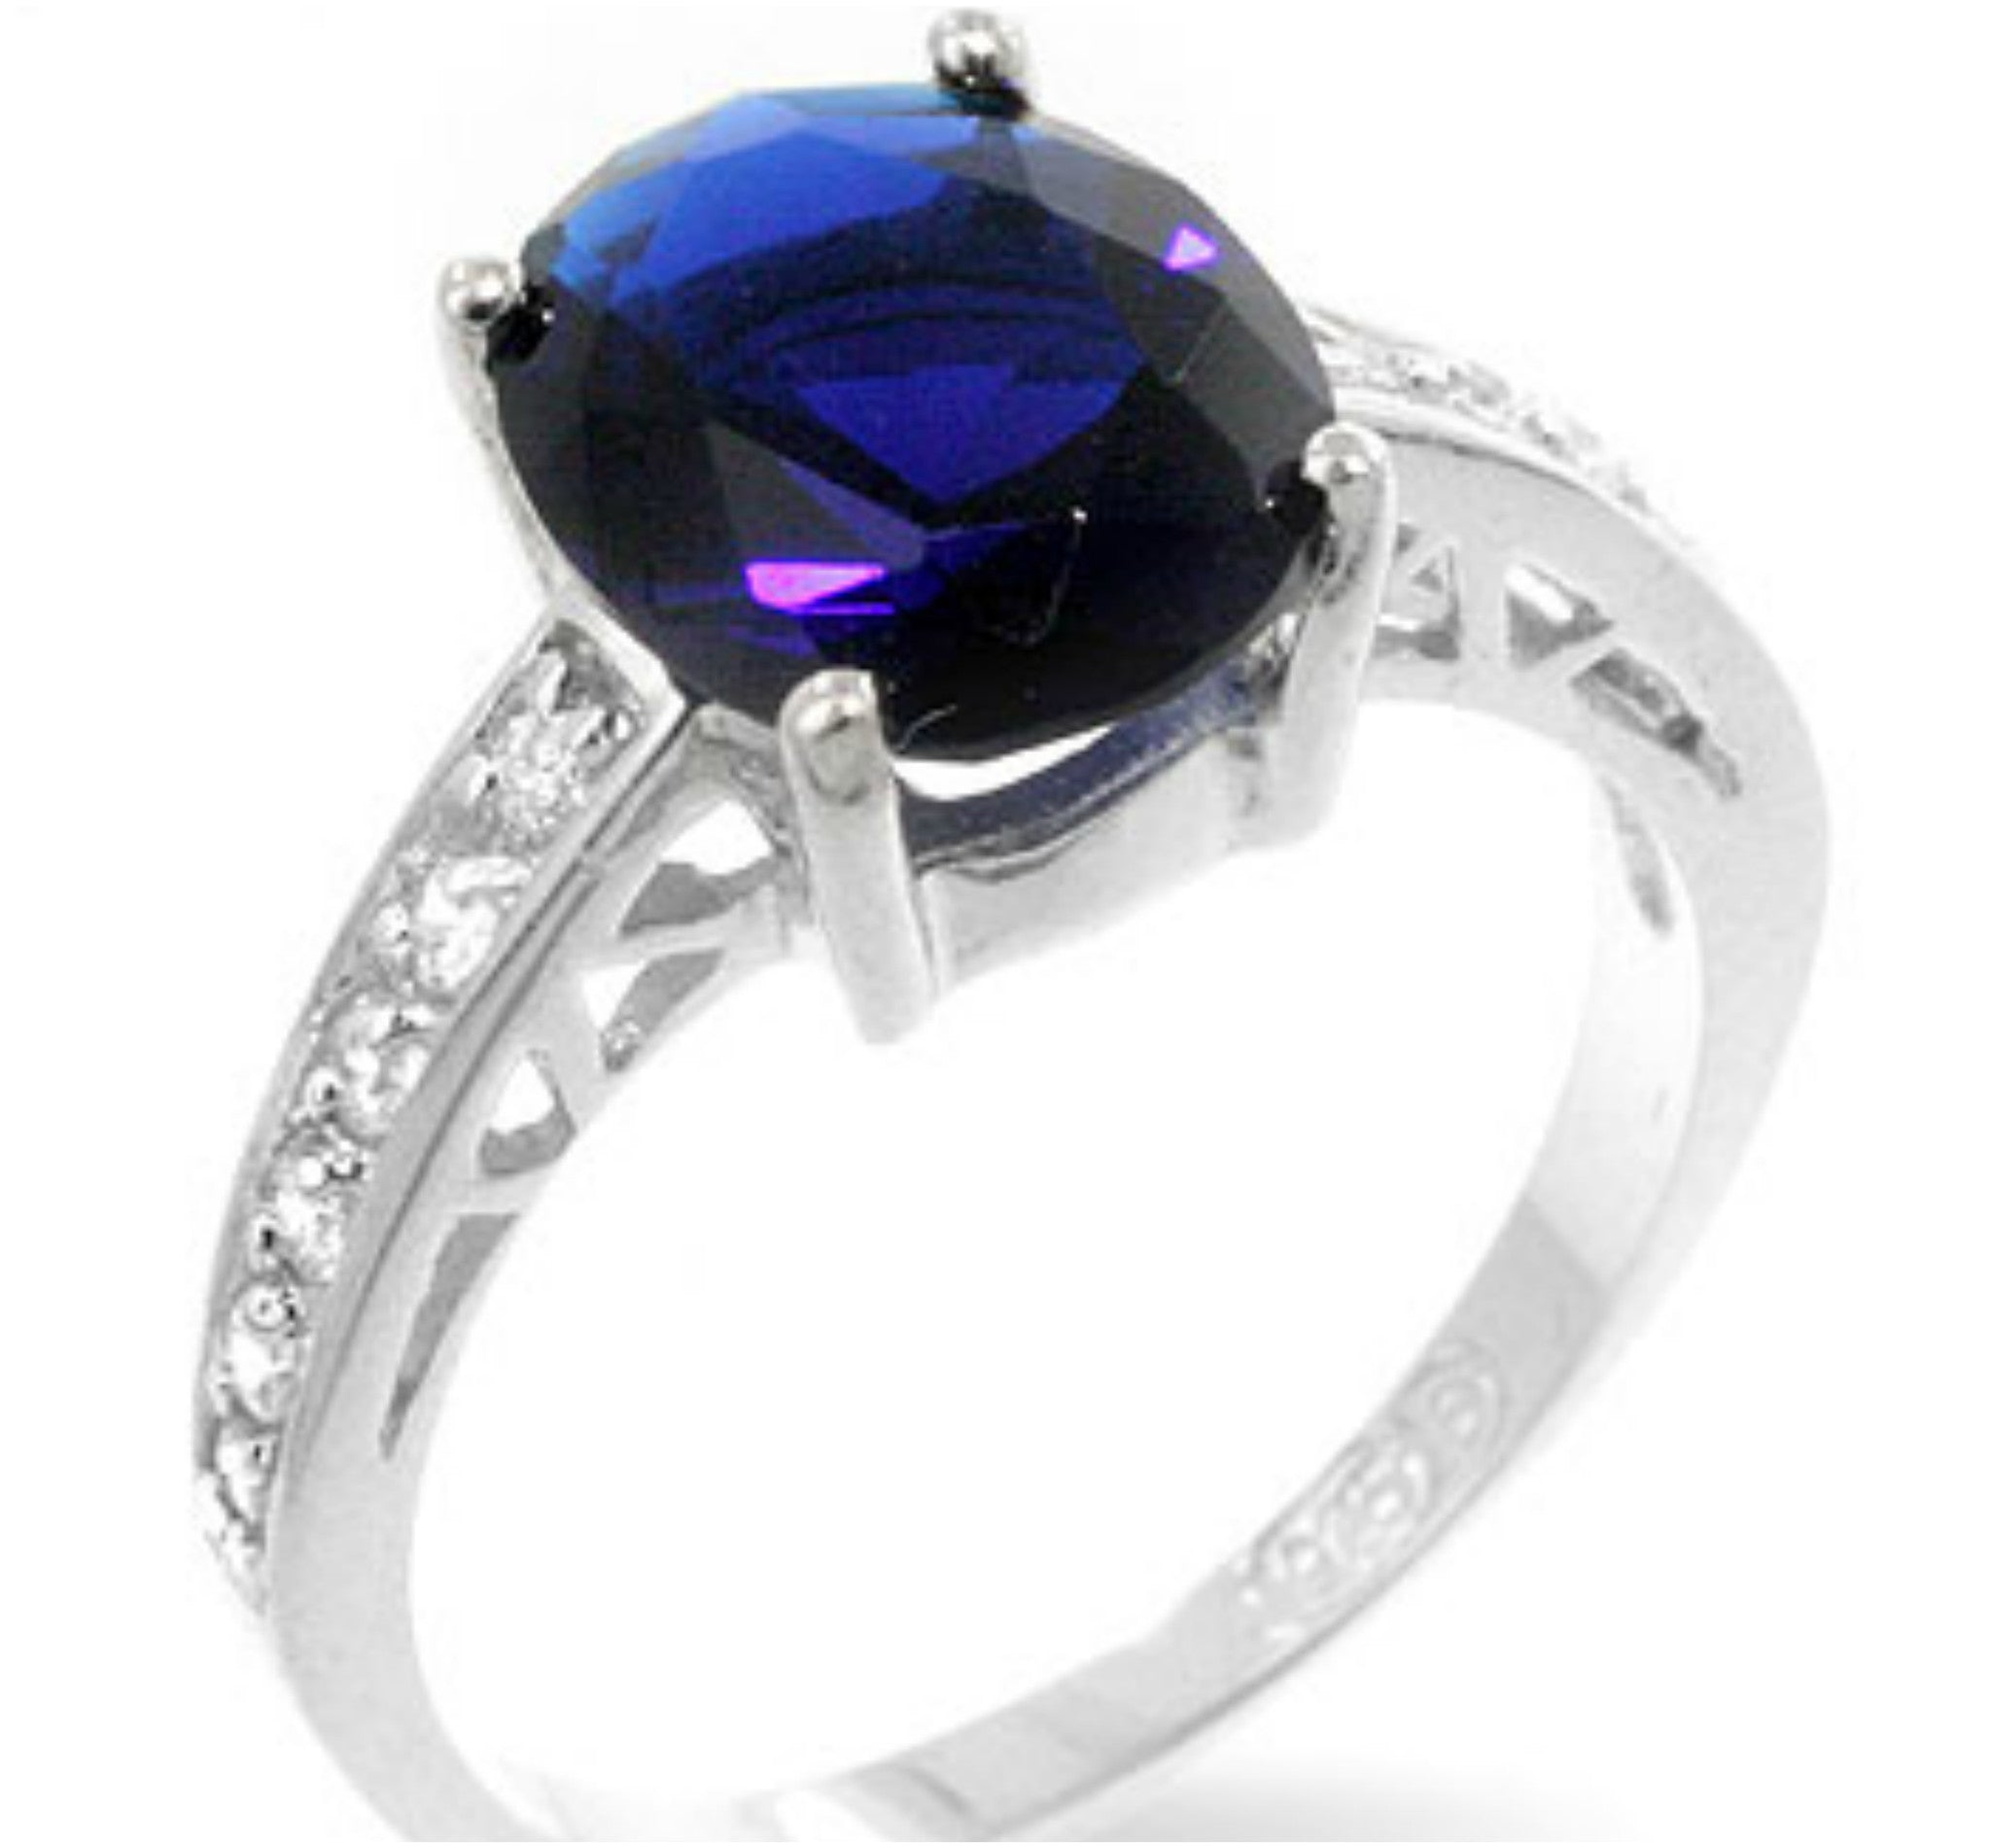 marie sapphire solitaire pin on all blue gold for white ring jewelry sterling her pinterest by iris cz sizes